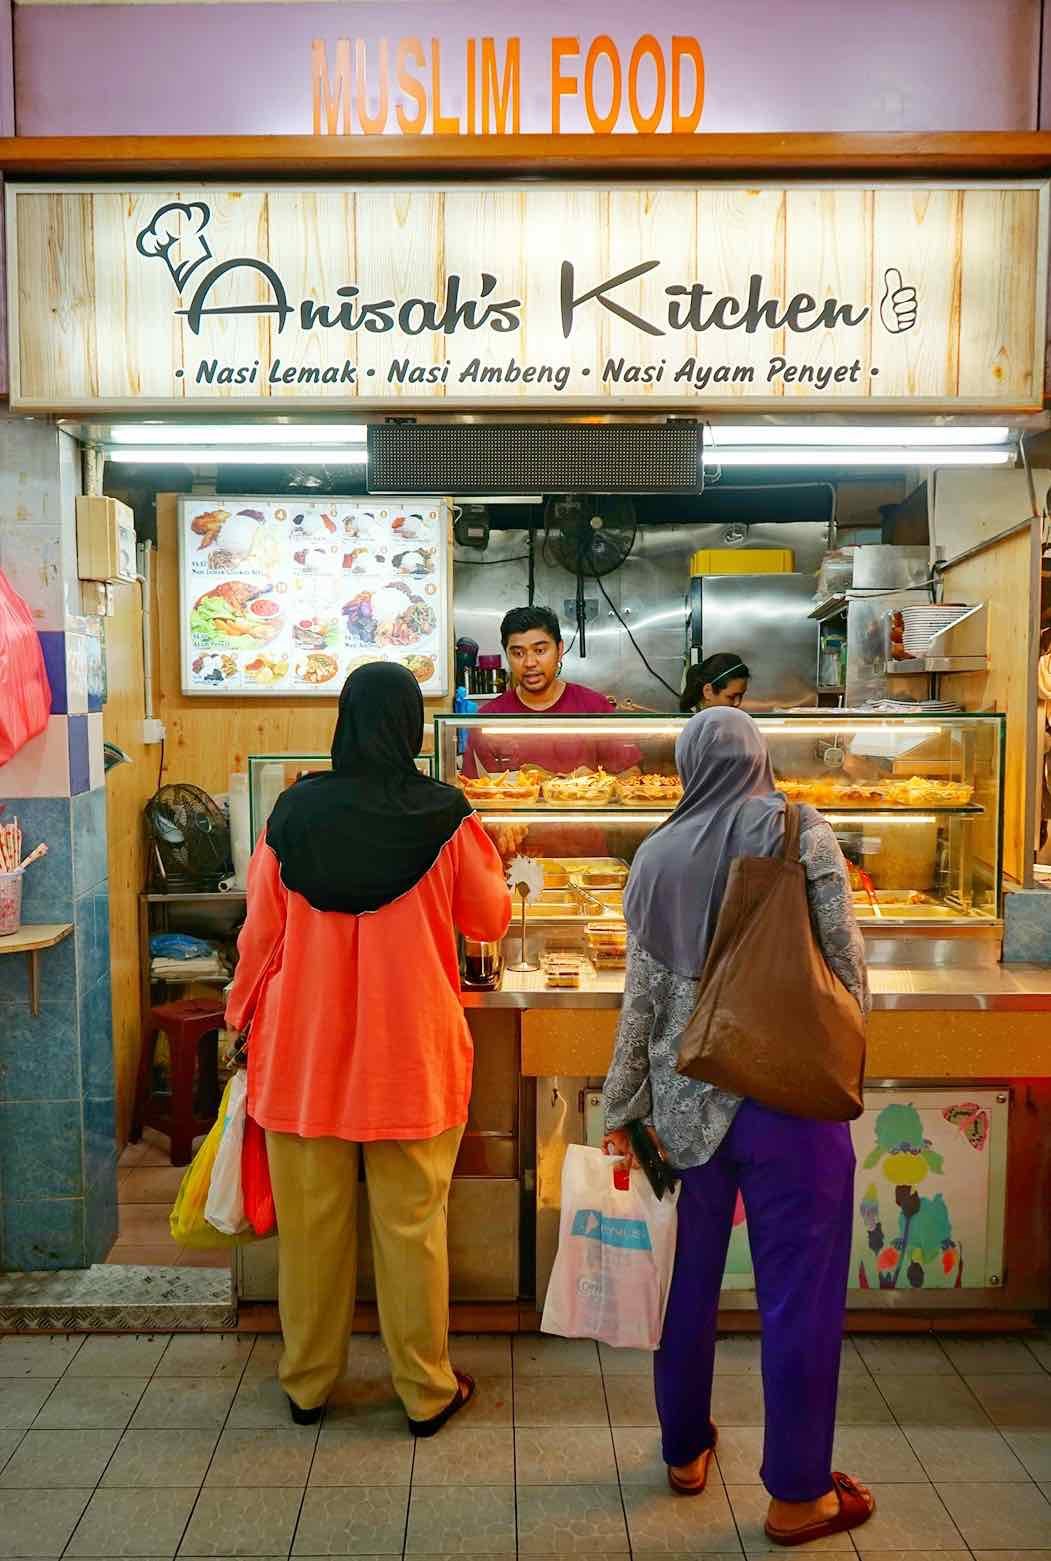 Anisah Kitchen Shopfront - AspirantSG